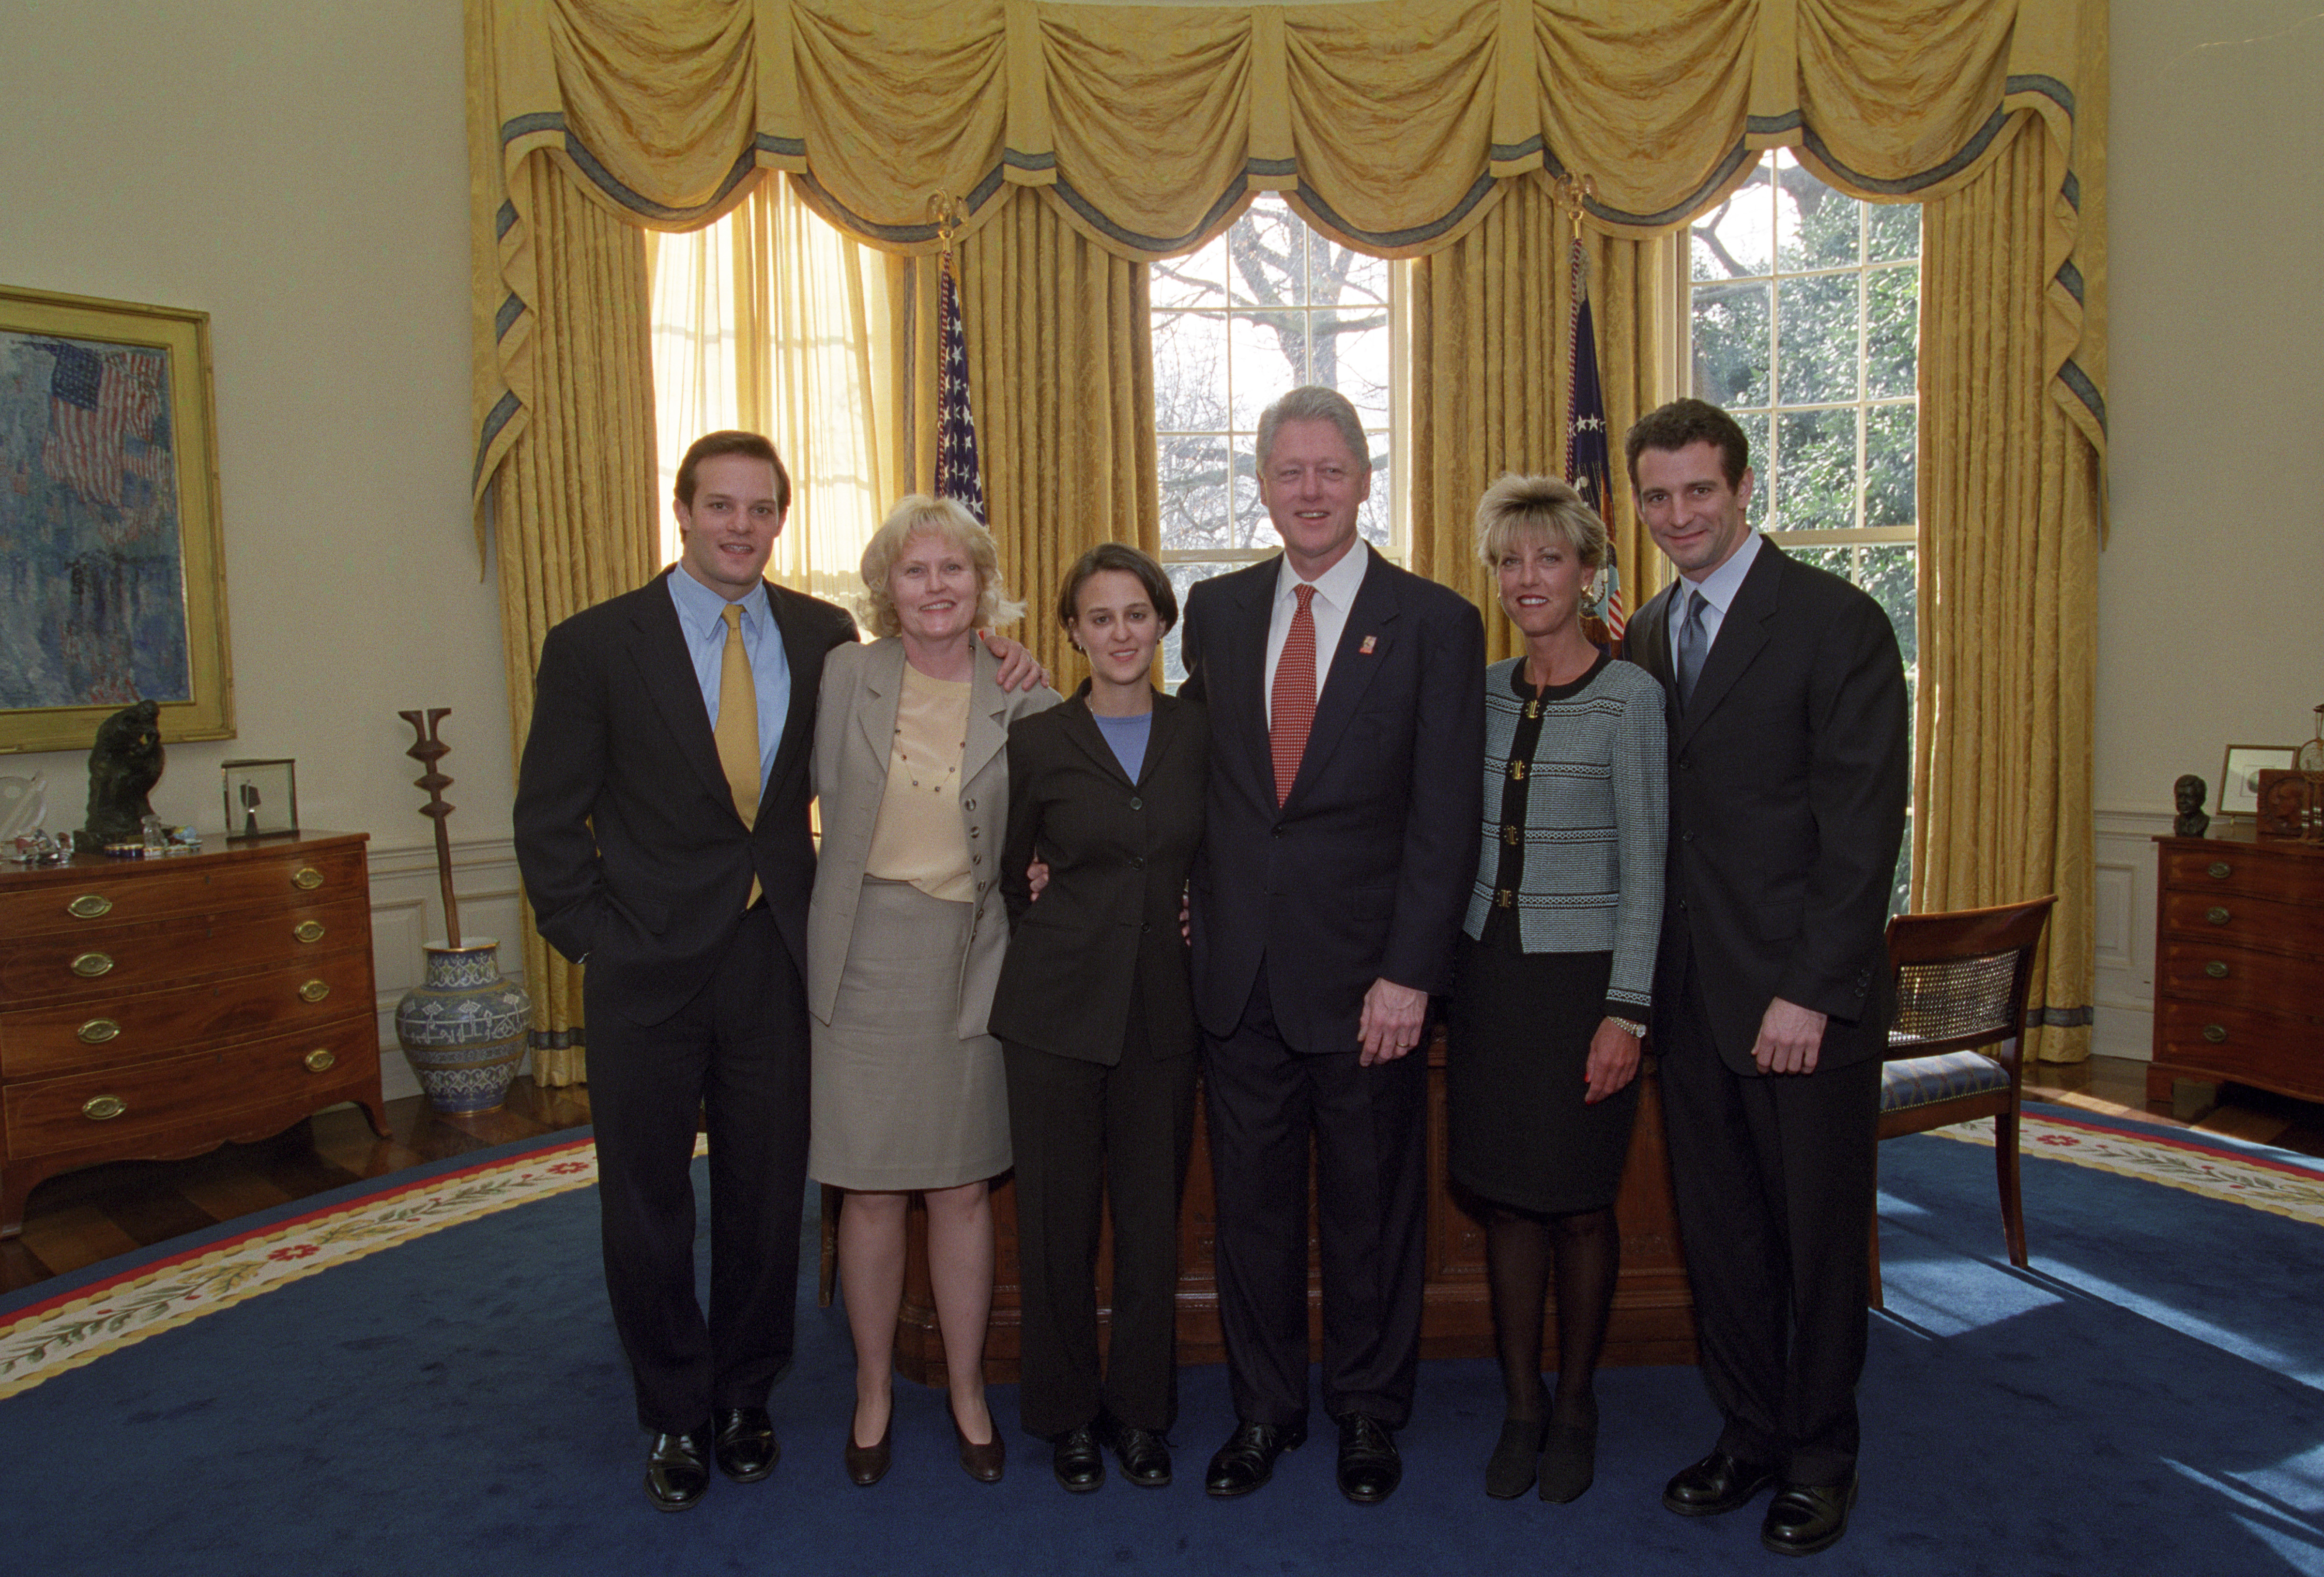 President Clinton joins the staff of the Staff Secretary's Office for a group photo in the Oval Office